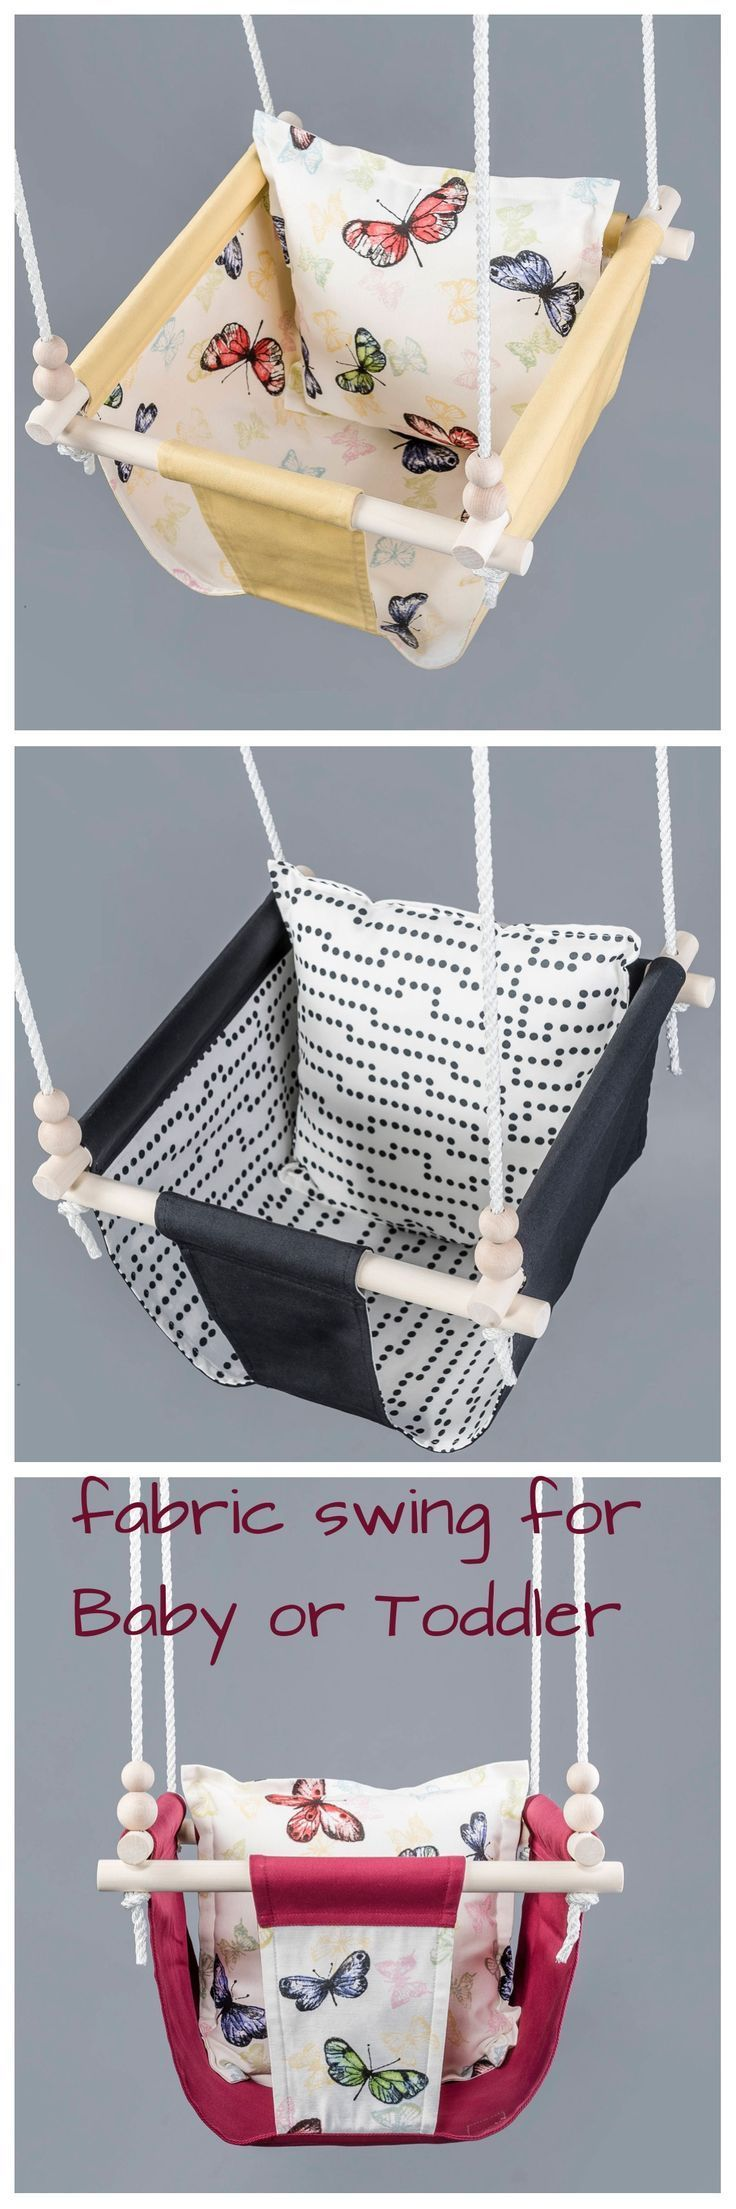 Personalized fabric swing for baby and toddler girl sweet idea to